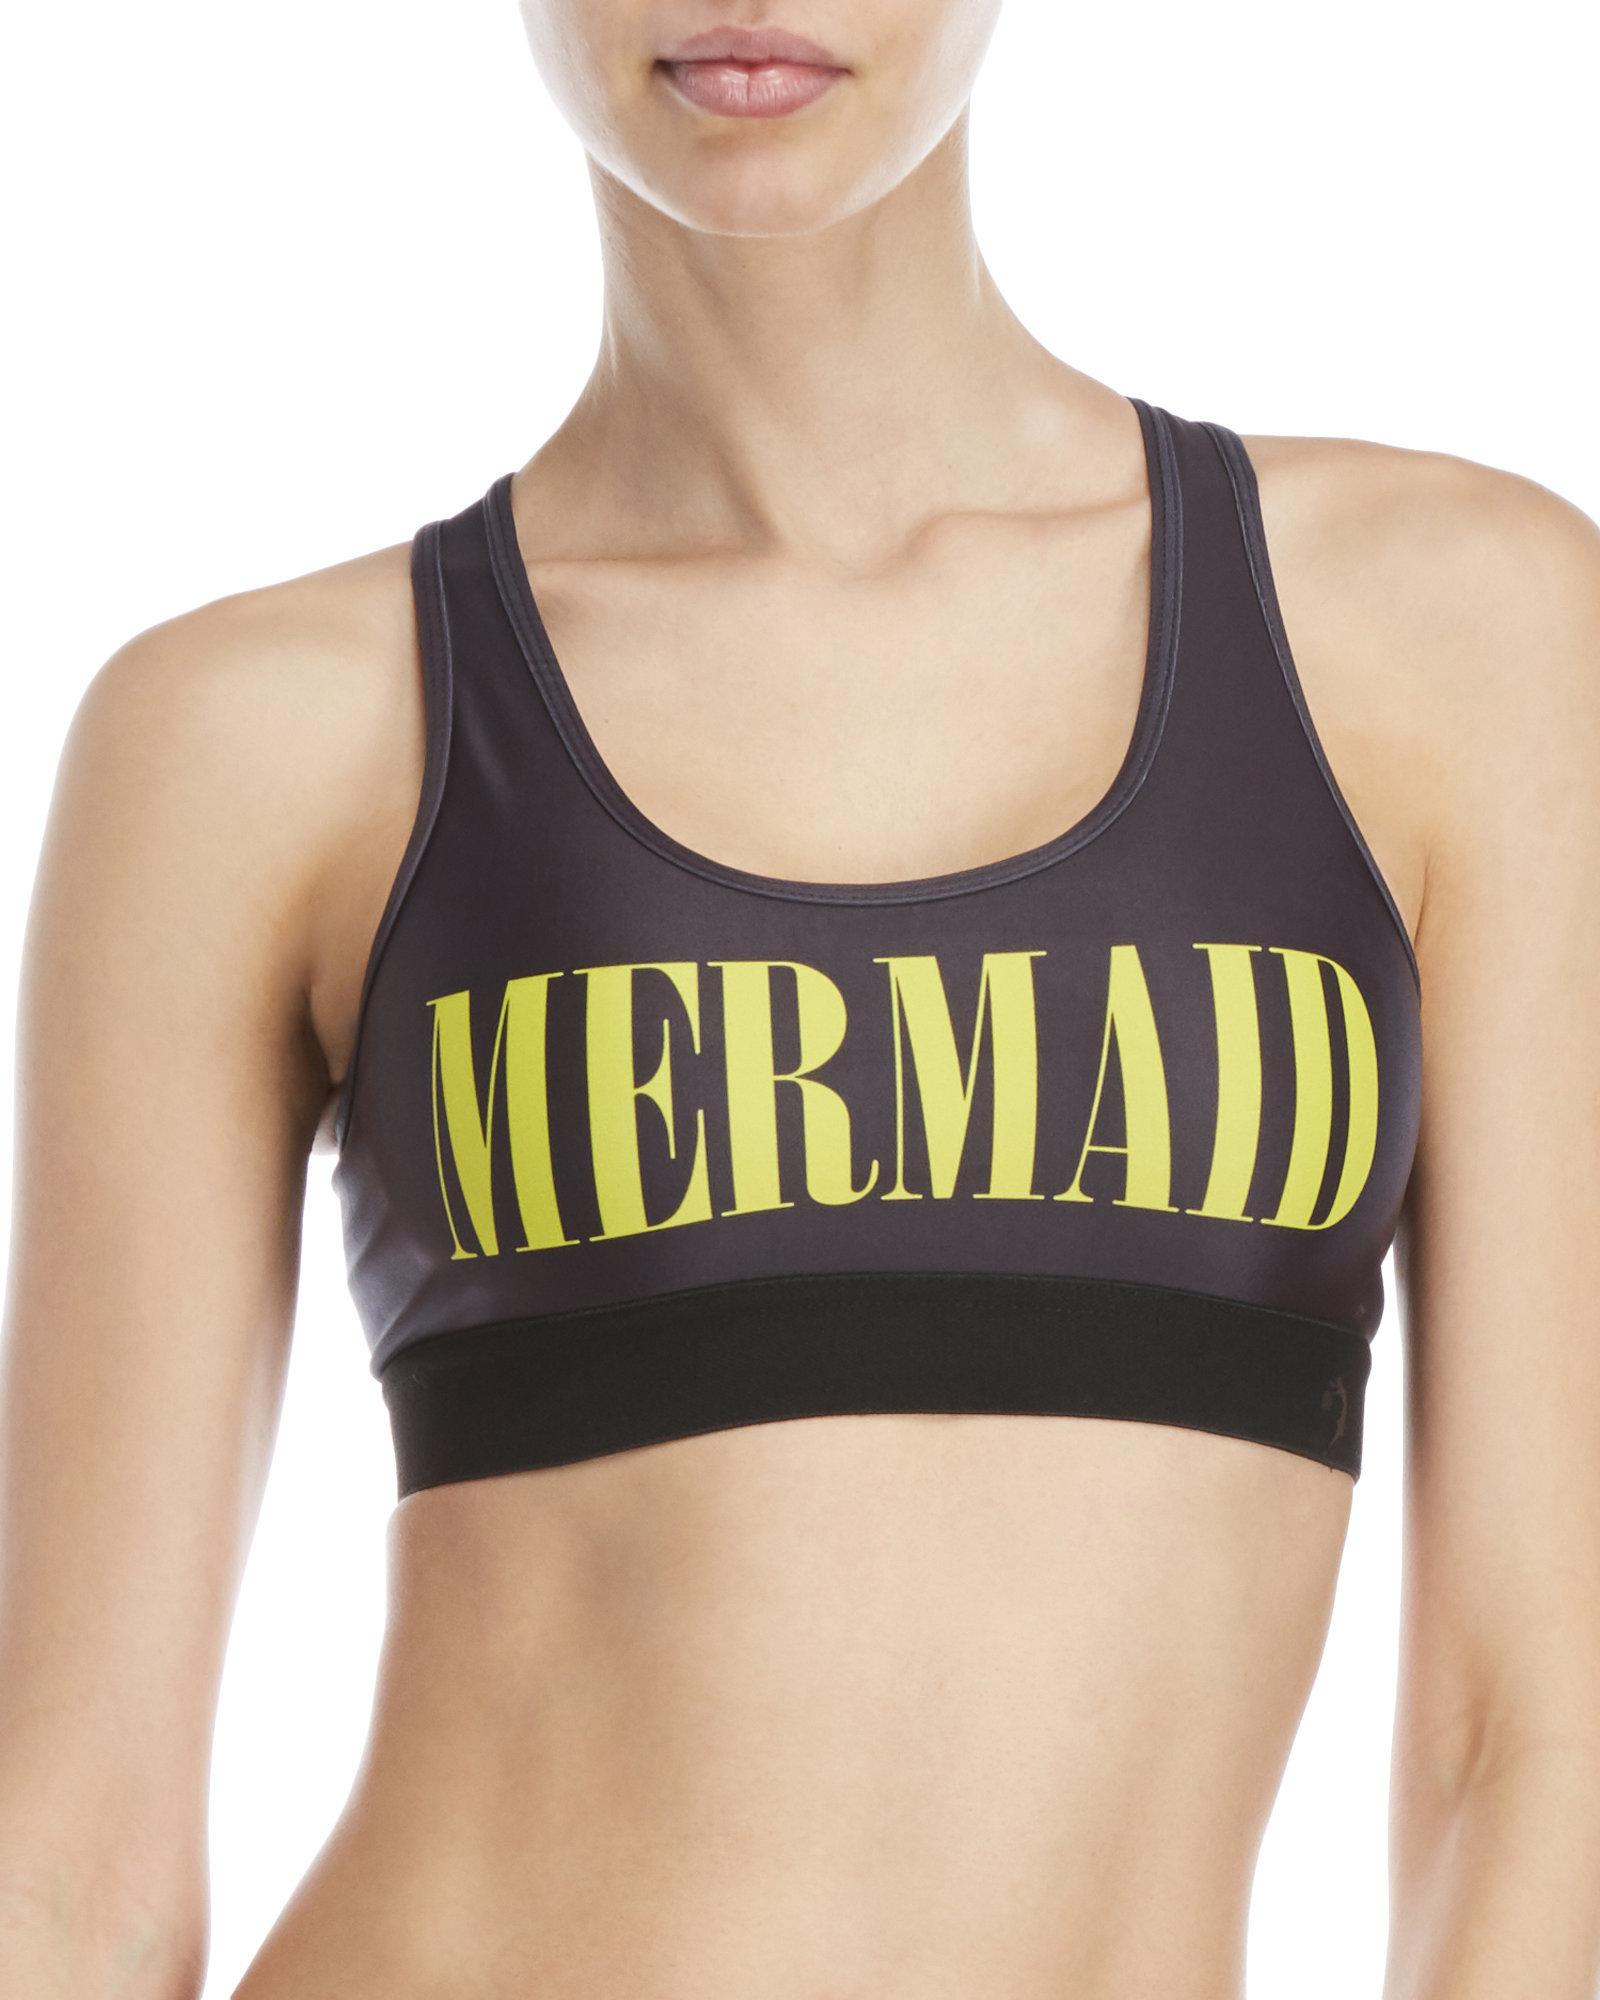 d54d3c0a81 Lyst - Chrldr Mermaid Graphic Sports Bra in Black